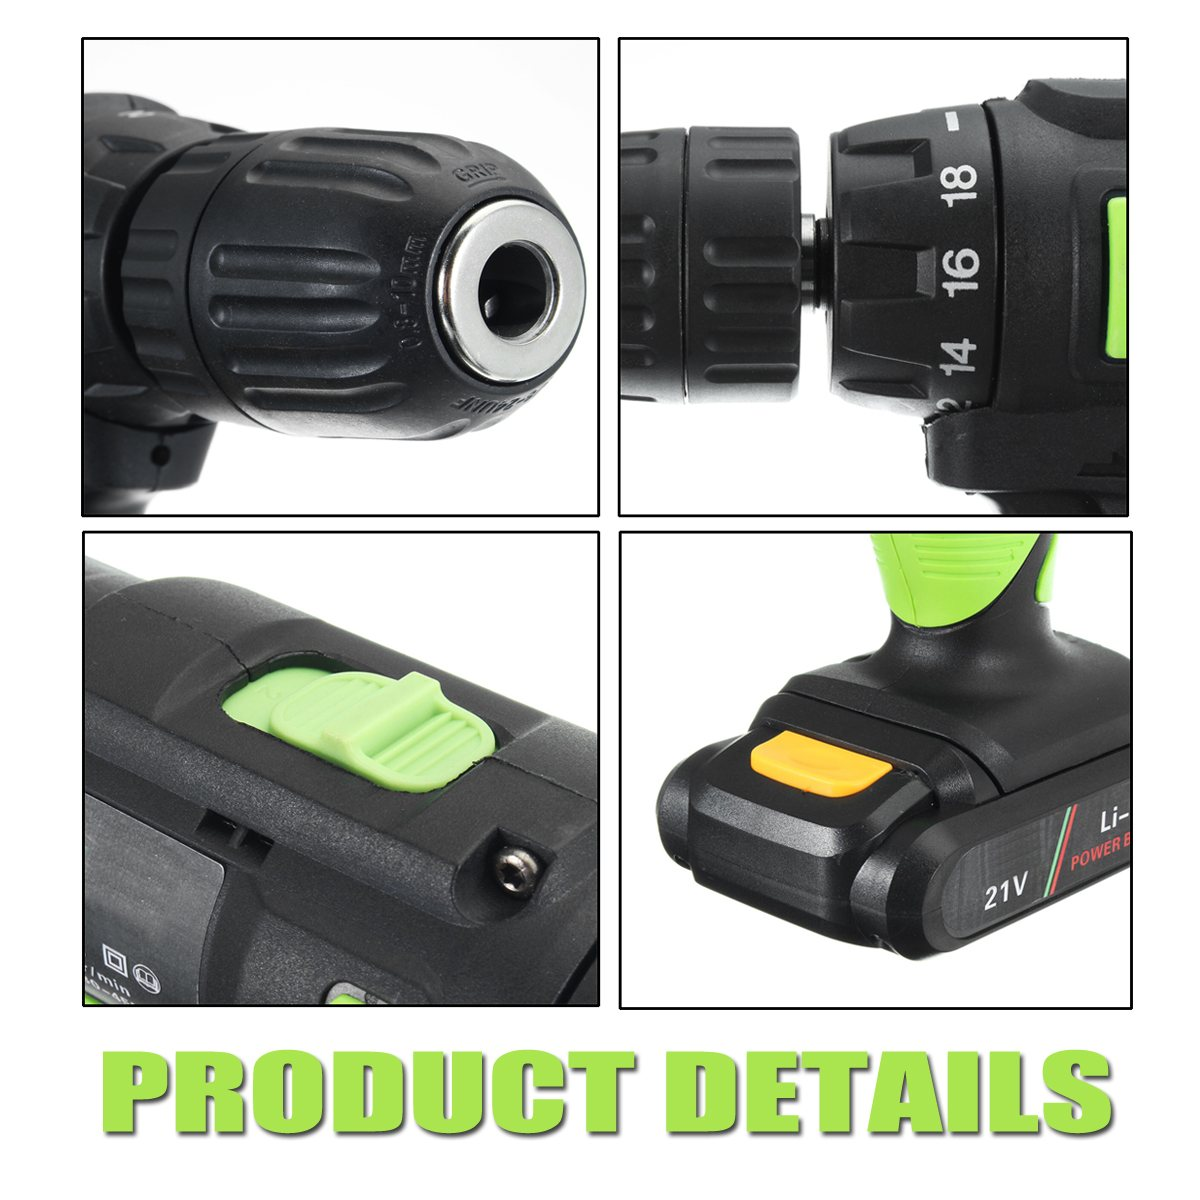 21V Electric Hammer Rechargeable Wireless Mini Electric Drill Bit Multifunctional Electric Screwdriver Torque drill +2 Batteries